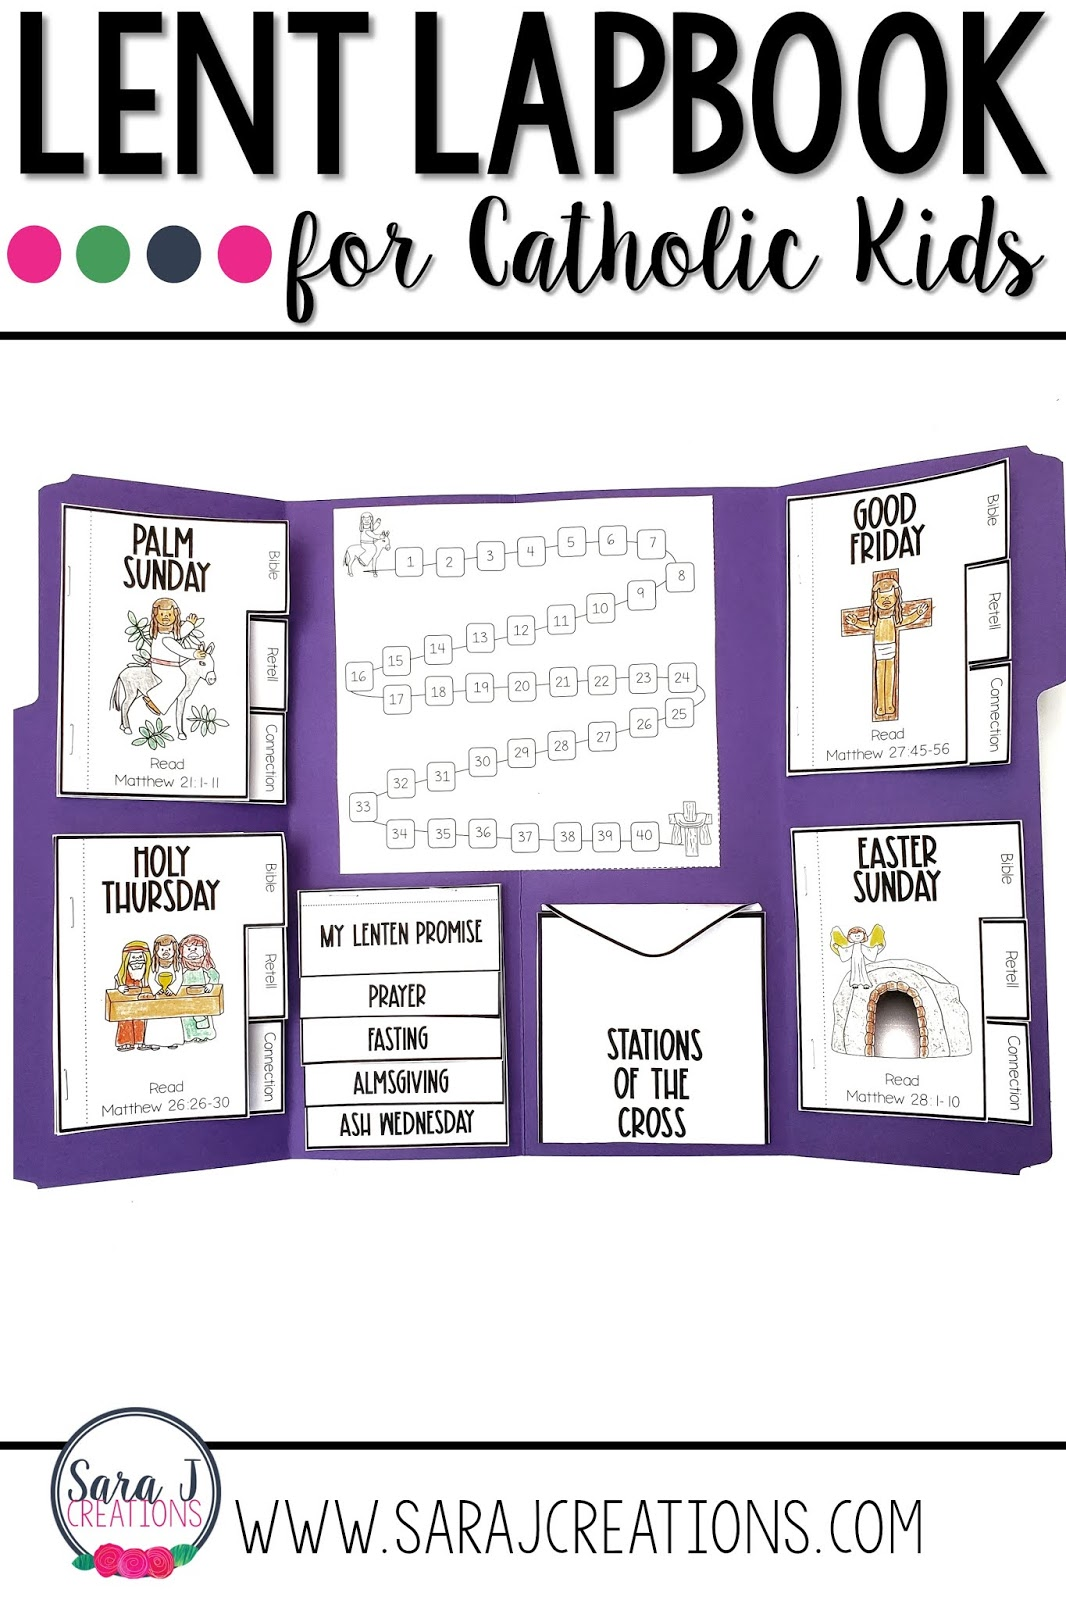 Use this Catholic Lent lapbook to help your students grow closer to Jesus through scripture and Catholic traditions & devotions.